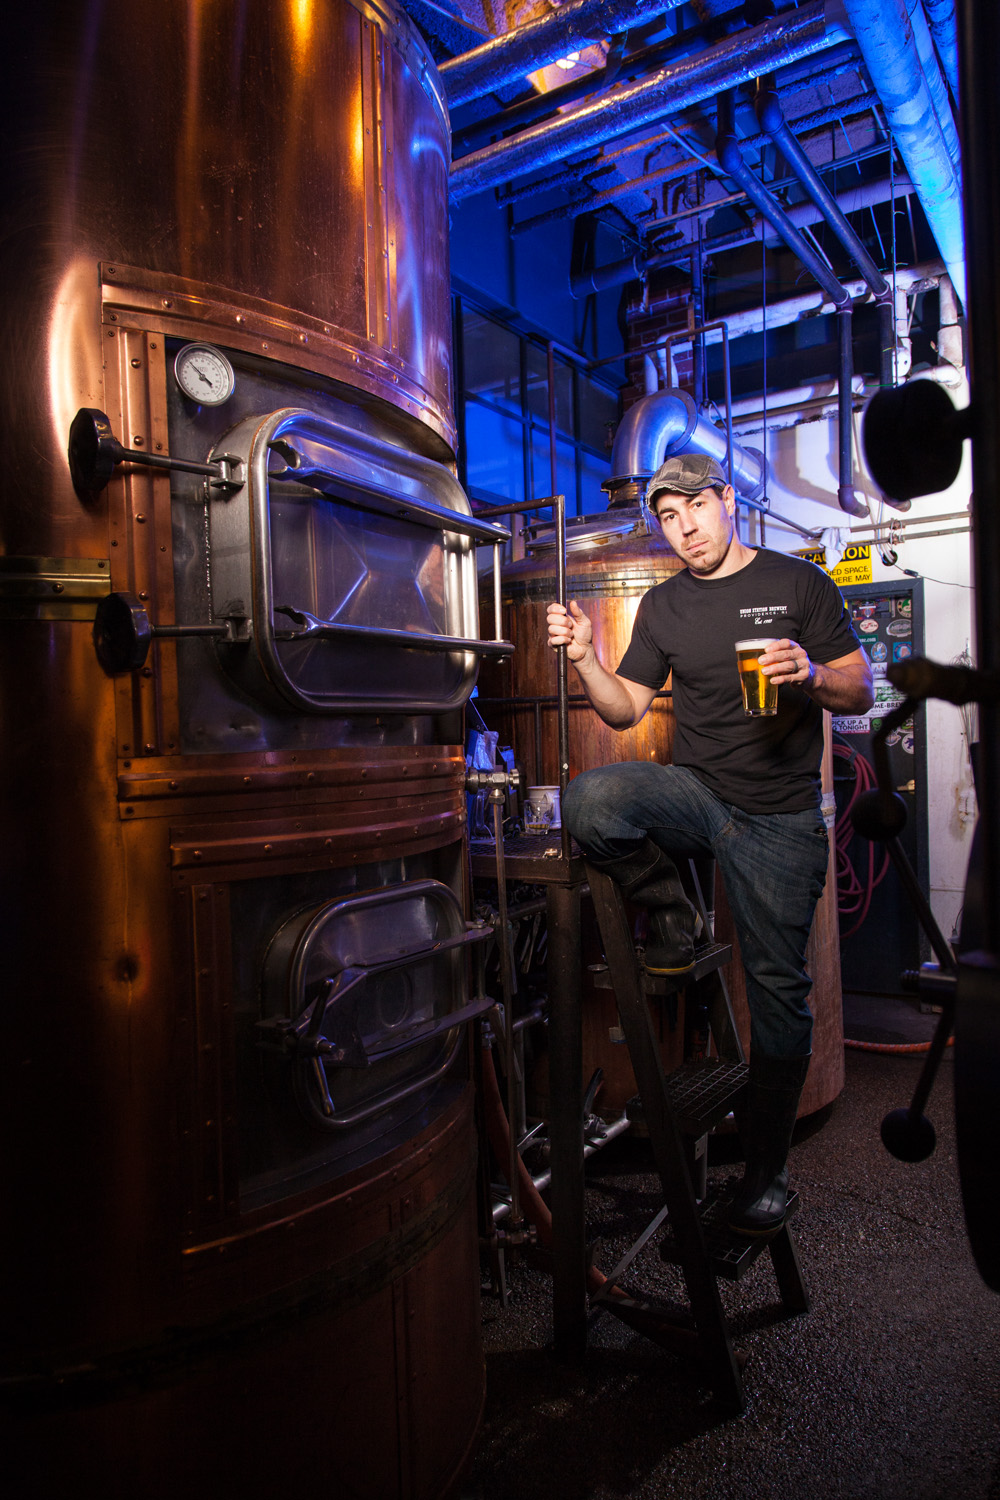 Robert DaRosa, Head Brewer at Union Station Brewery, Providence, RI